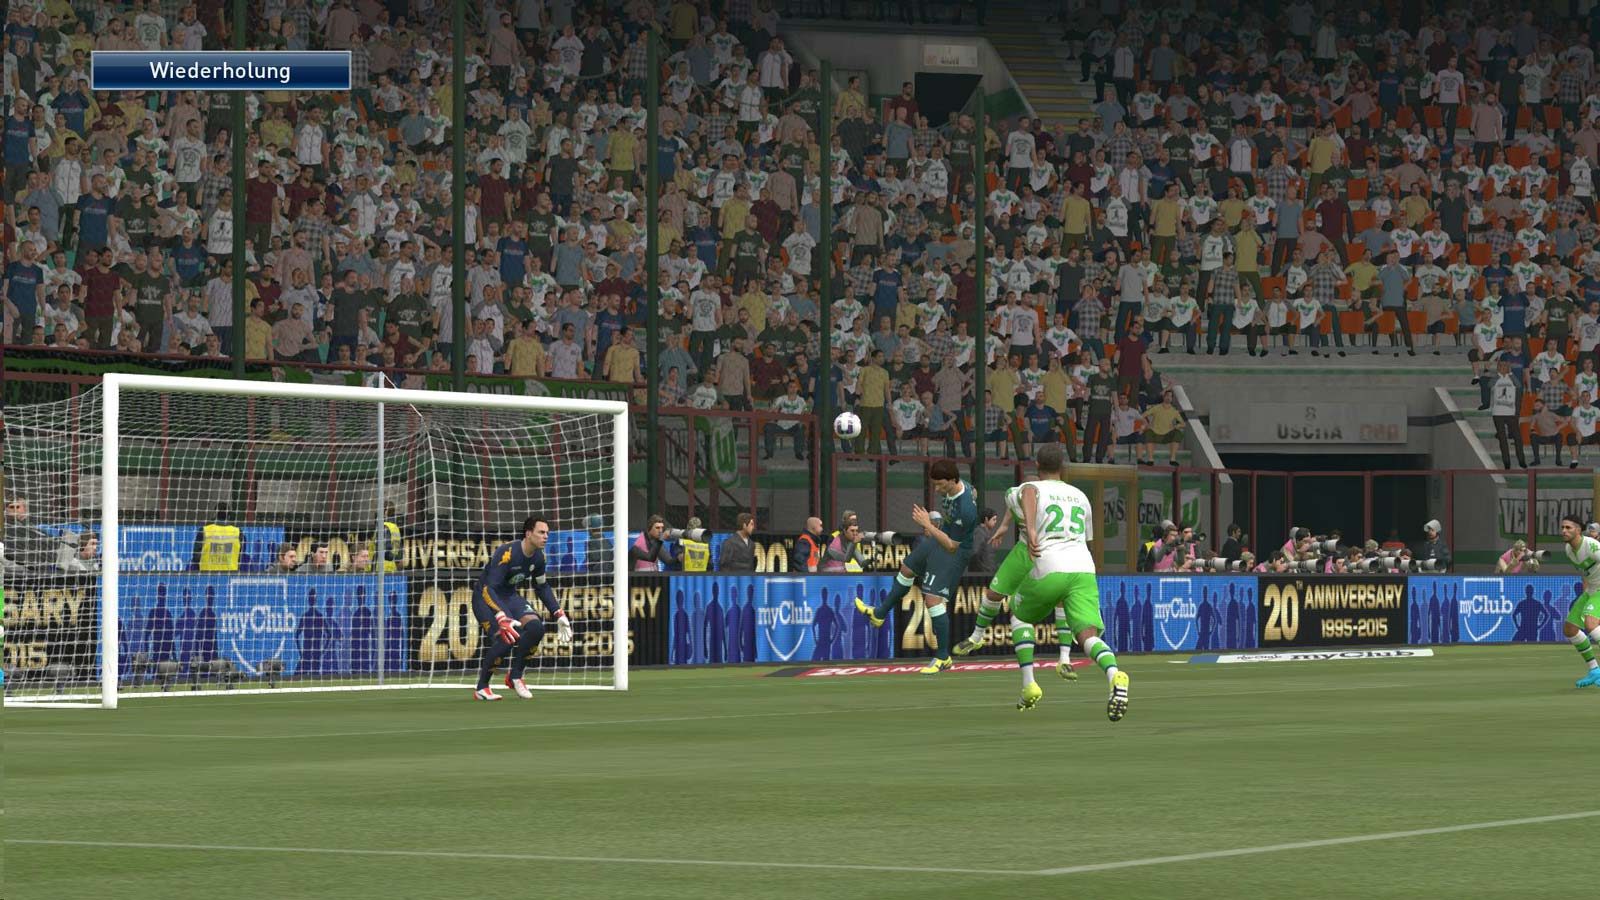 pes-2016-pc-version-screenshots-4.jpg